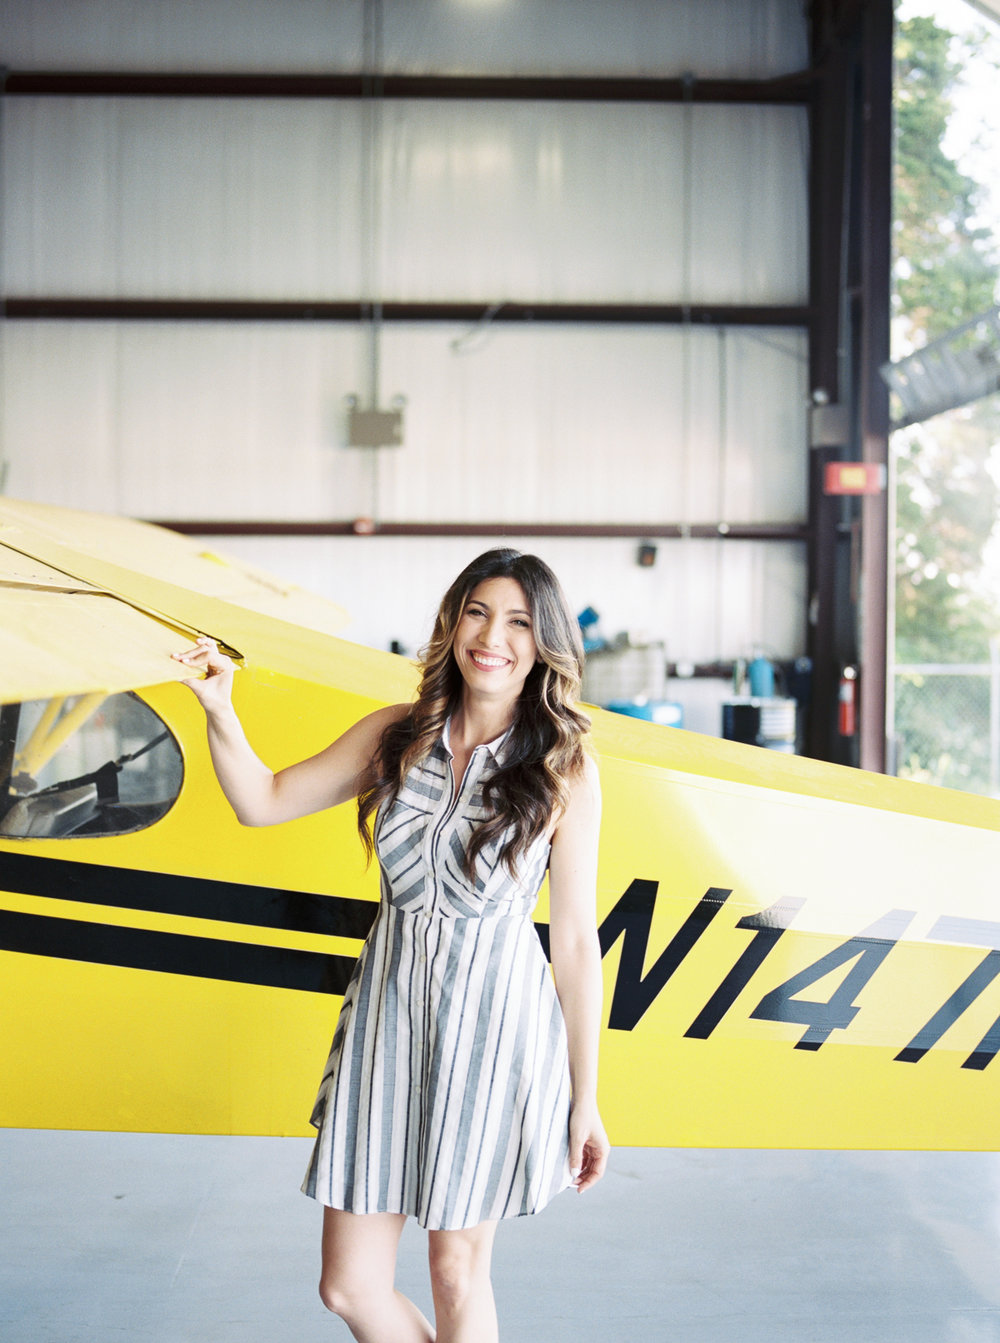 lianna + chuck airplane engagement session ©2017abigailbobophotography-4.jpg